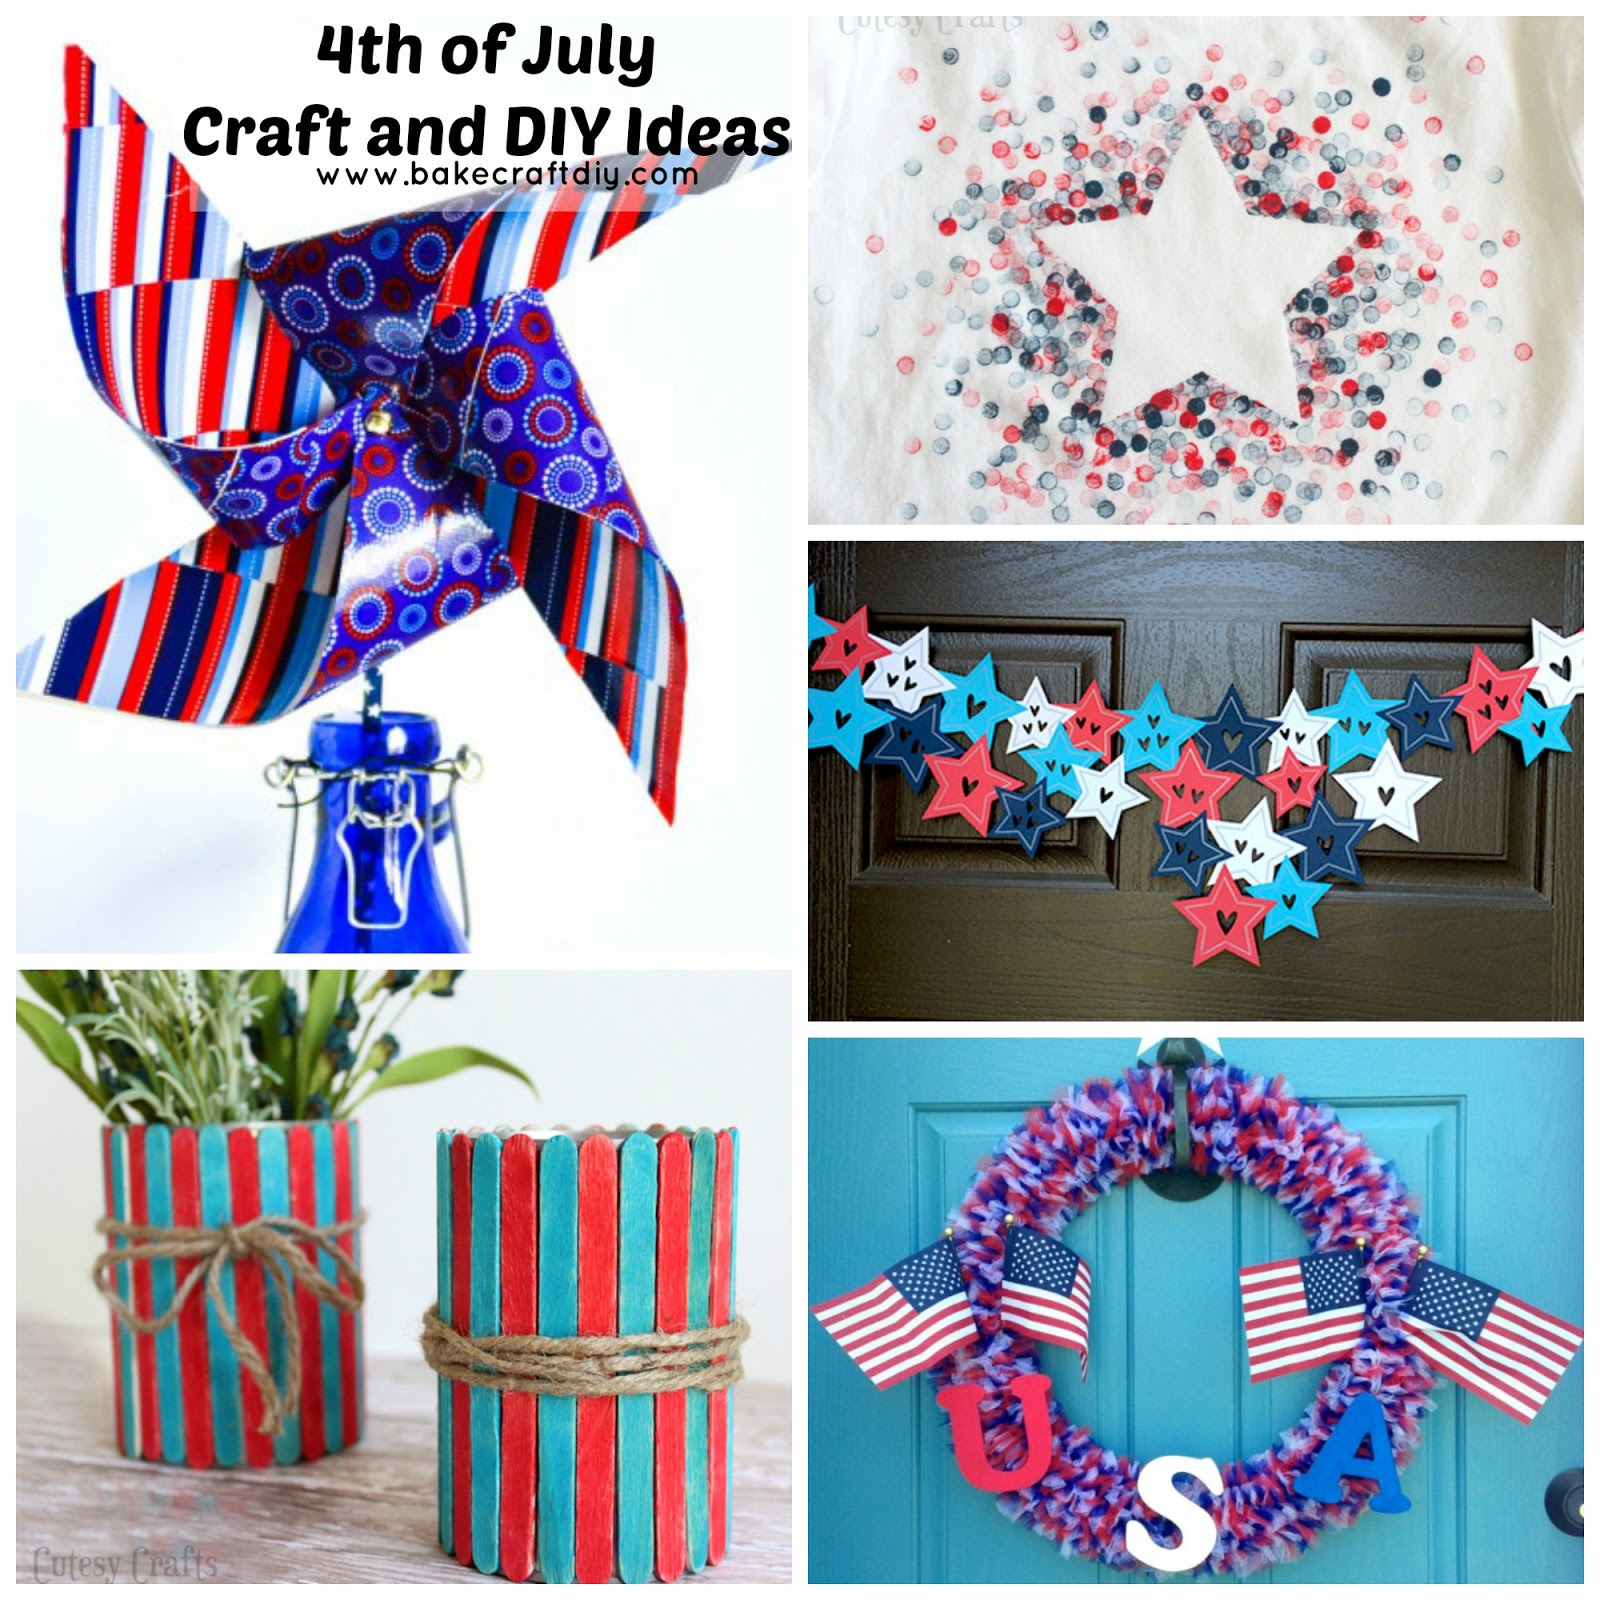 Bake Craft Diy 4th Of July Crafts And Diy Ideas